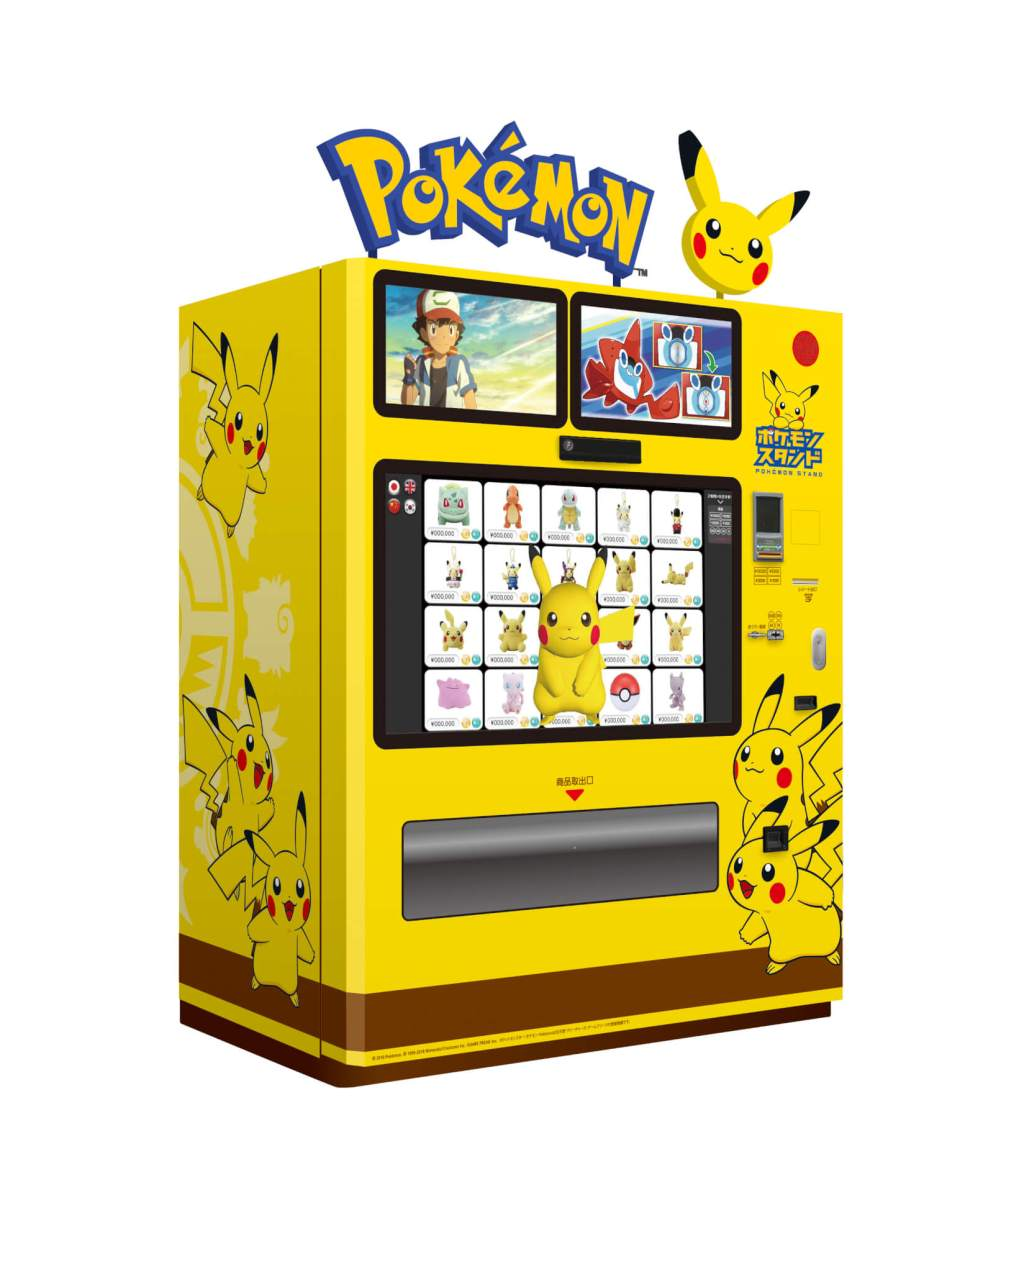 Vending Machine in Japan to sell Pokemon plushies